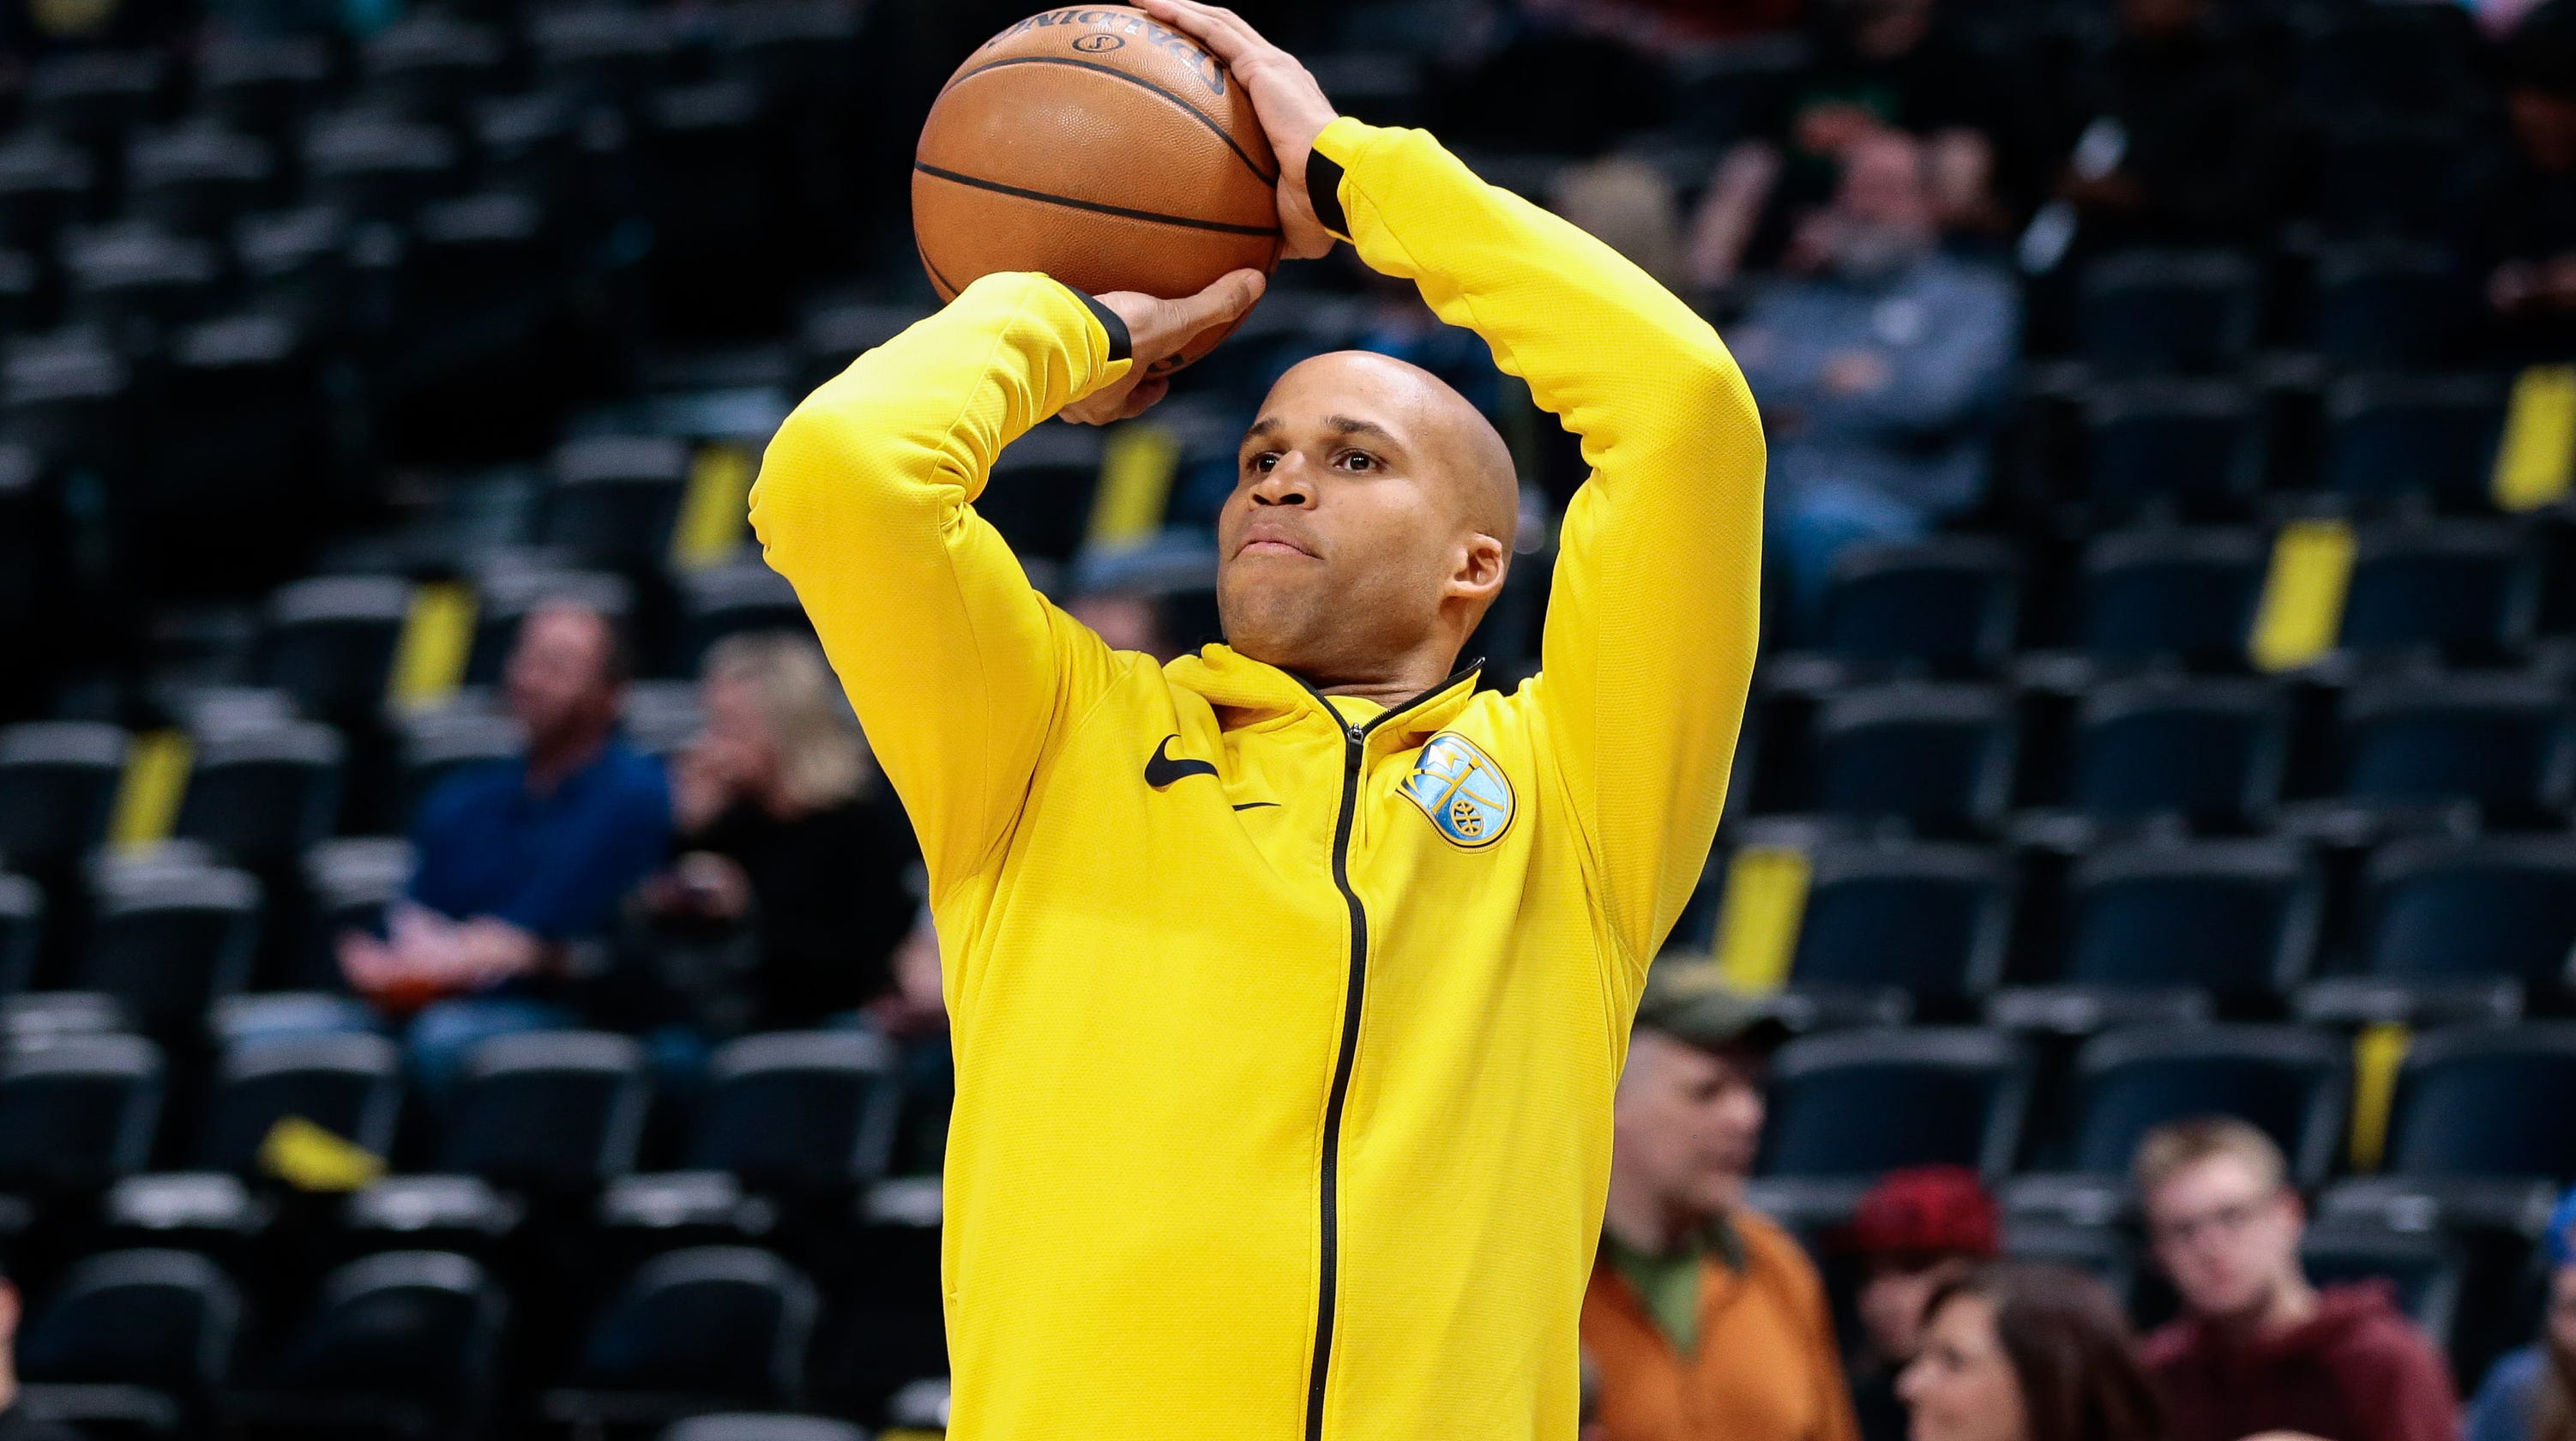 Father of NBA player Richard Jefferson killed in California drive-by  shooting 394fbd9db